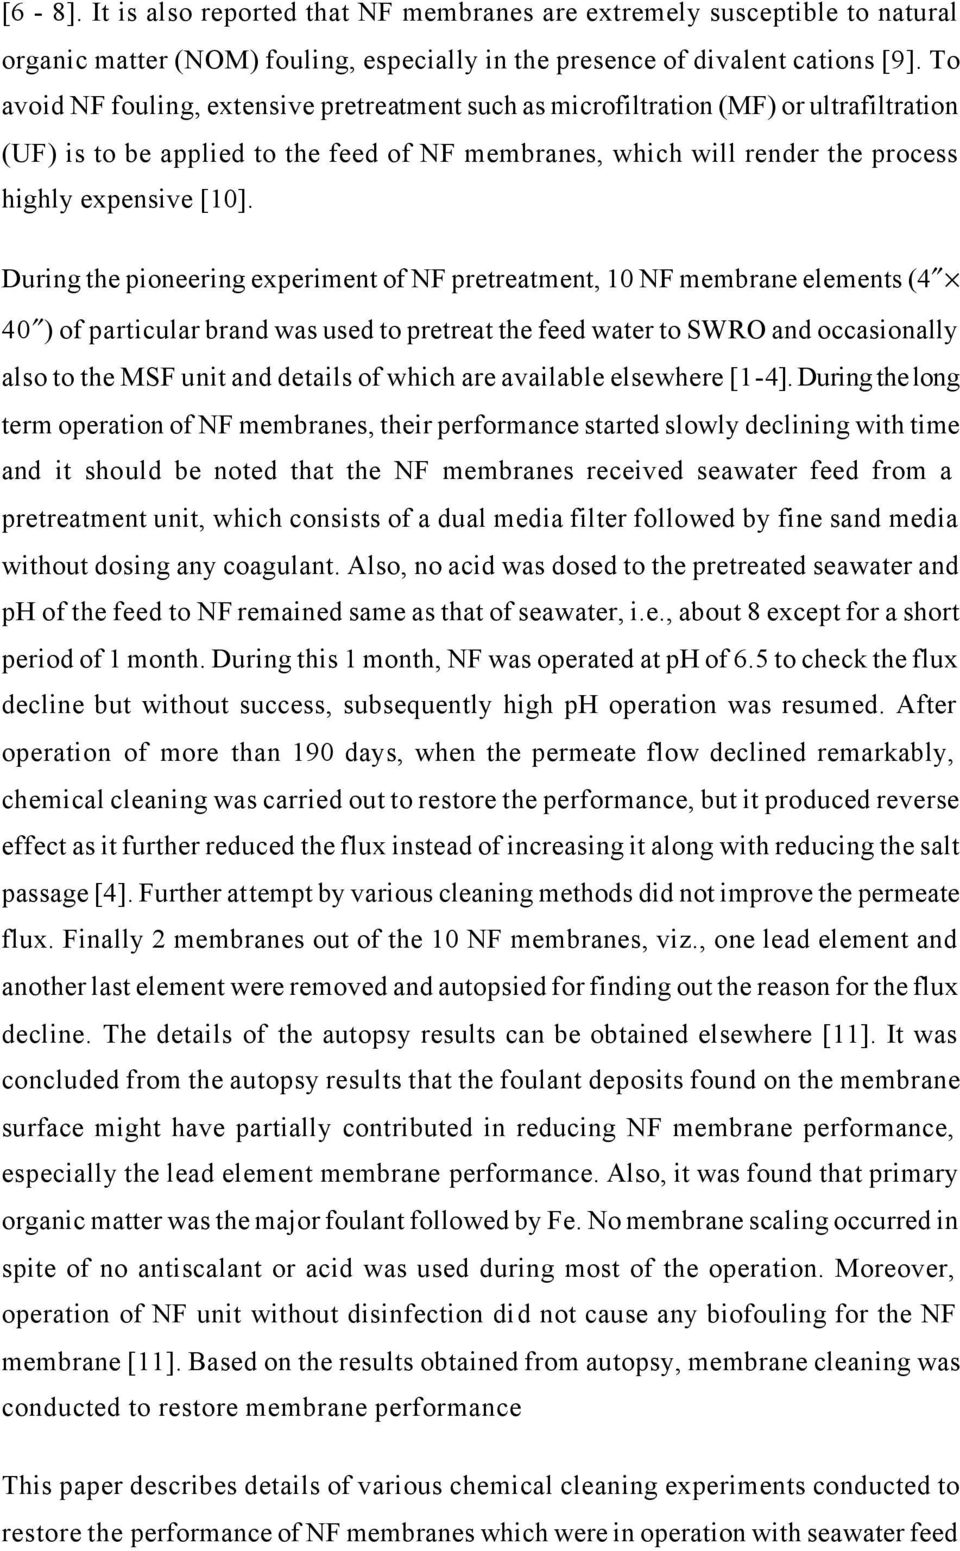 During the pioneering experiment of NF pretreatment, 10 NF membrane elements (4 40 ) of particular brand was used to pretreat the feed water to SWRO and occasionally also to the MSF unit and details